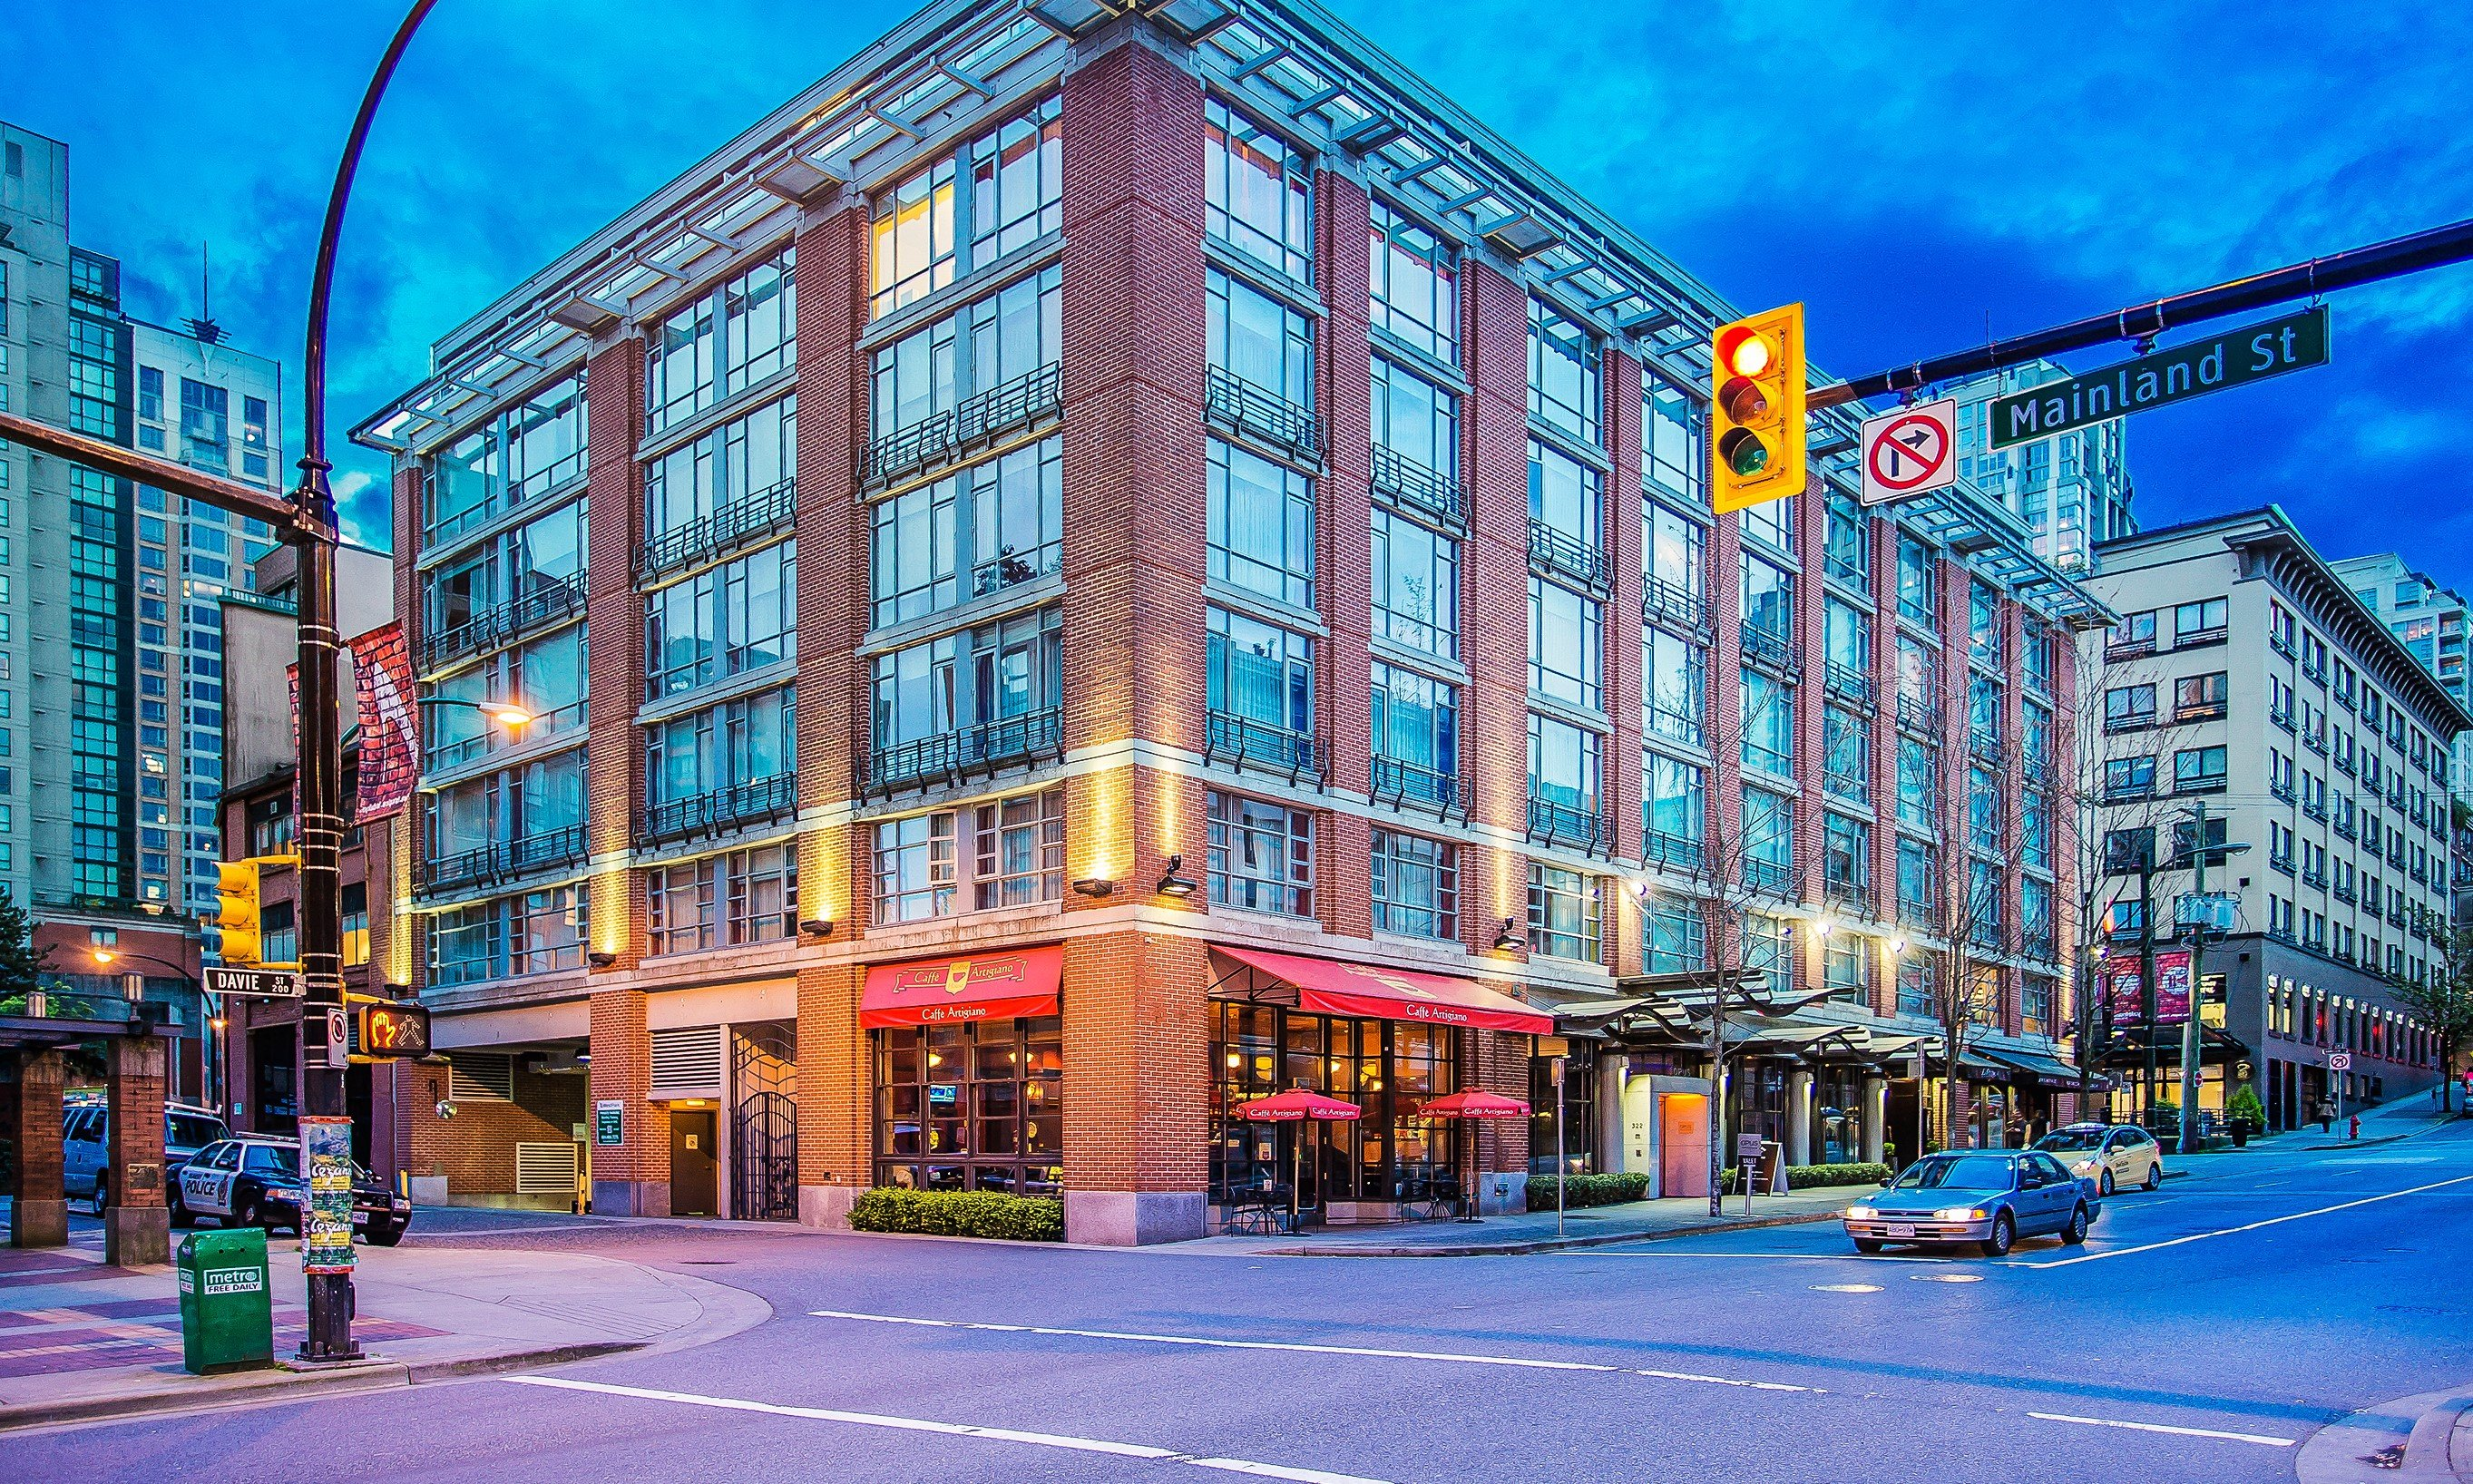 Opus Hotel Vancouver First Class Vancouver Bc Hotels Gds Reservation Codes Travel Weekly